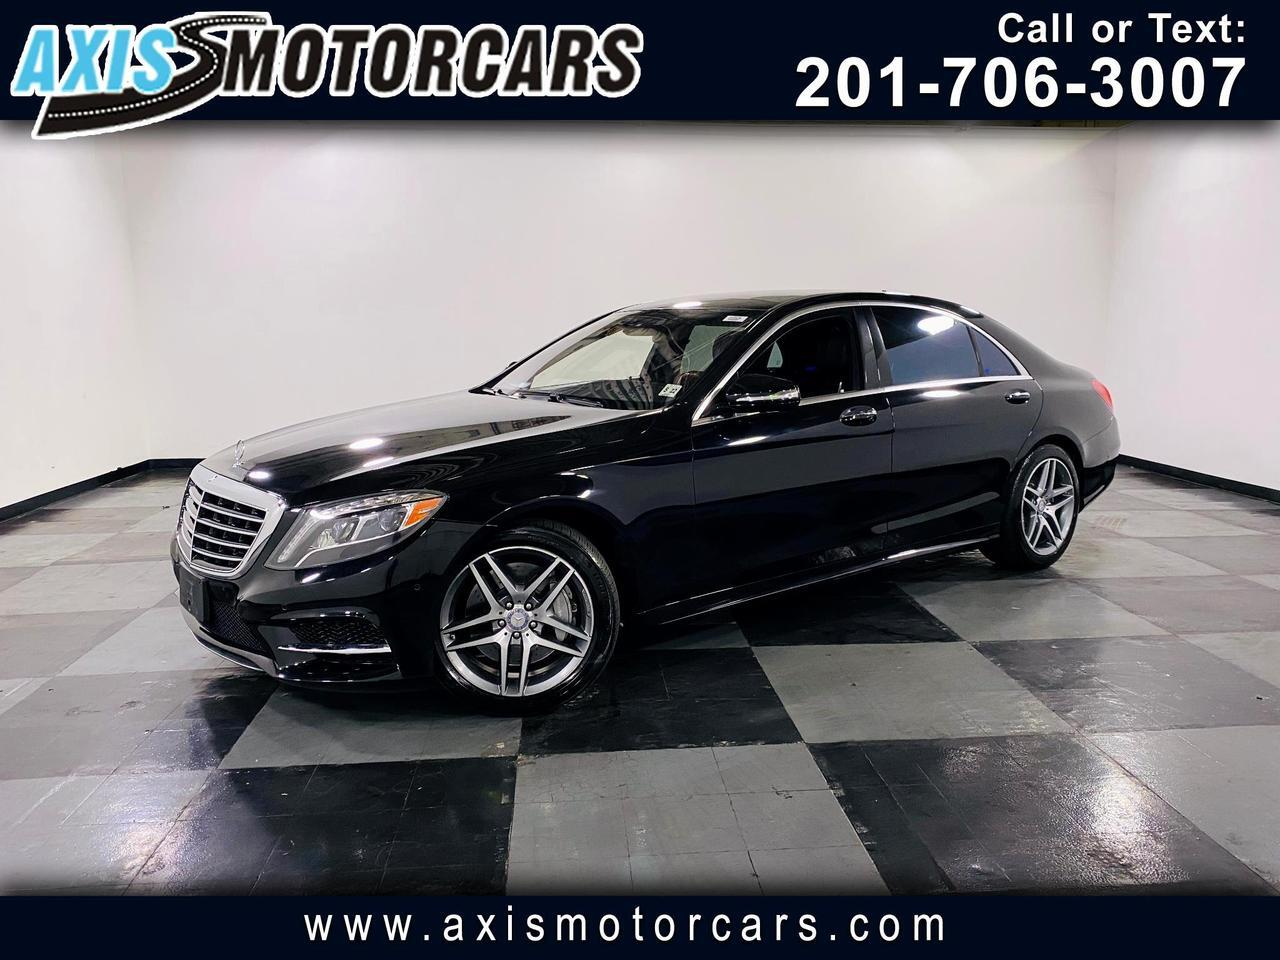 2017 Mercedes-Benz S550 w/ Burmester Sound Panoramic Roof  Navigation Back